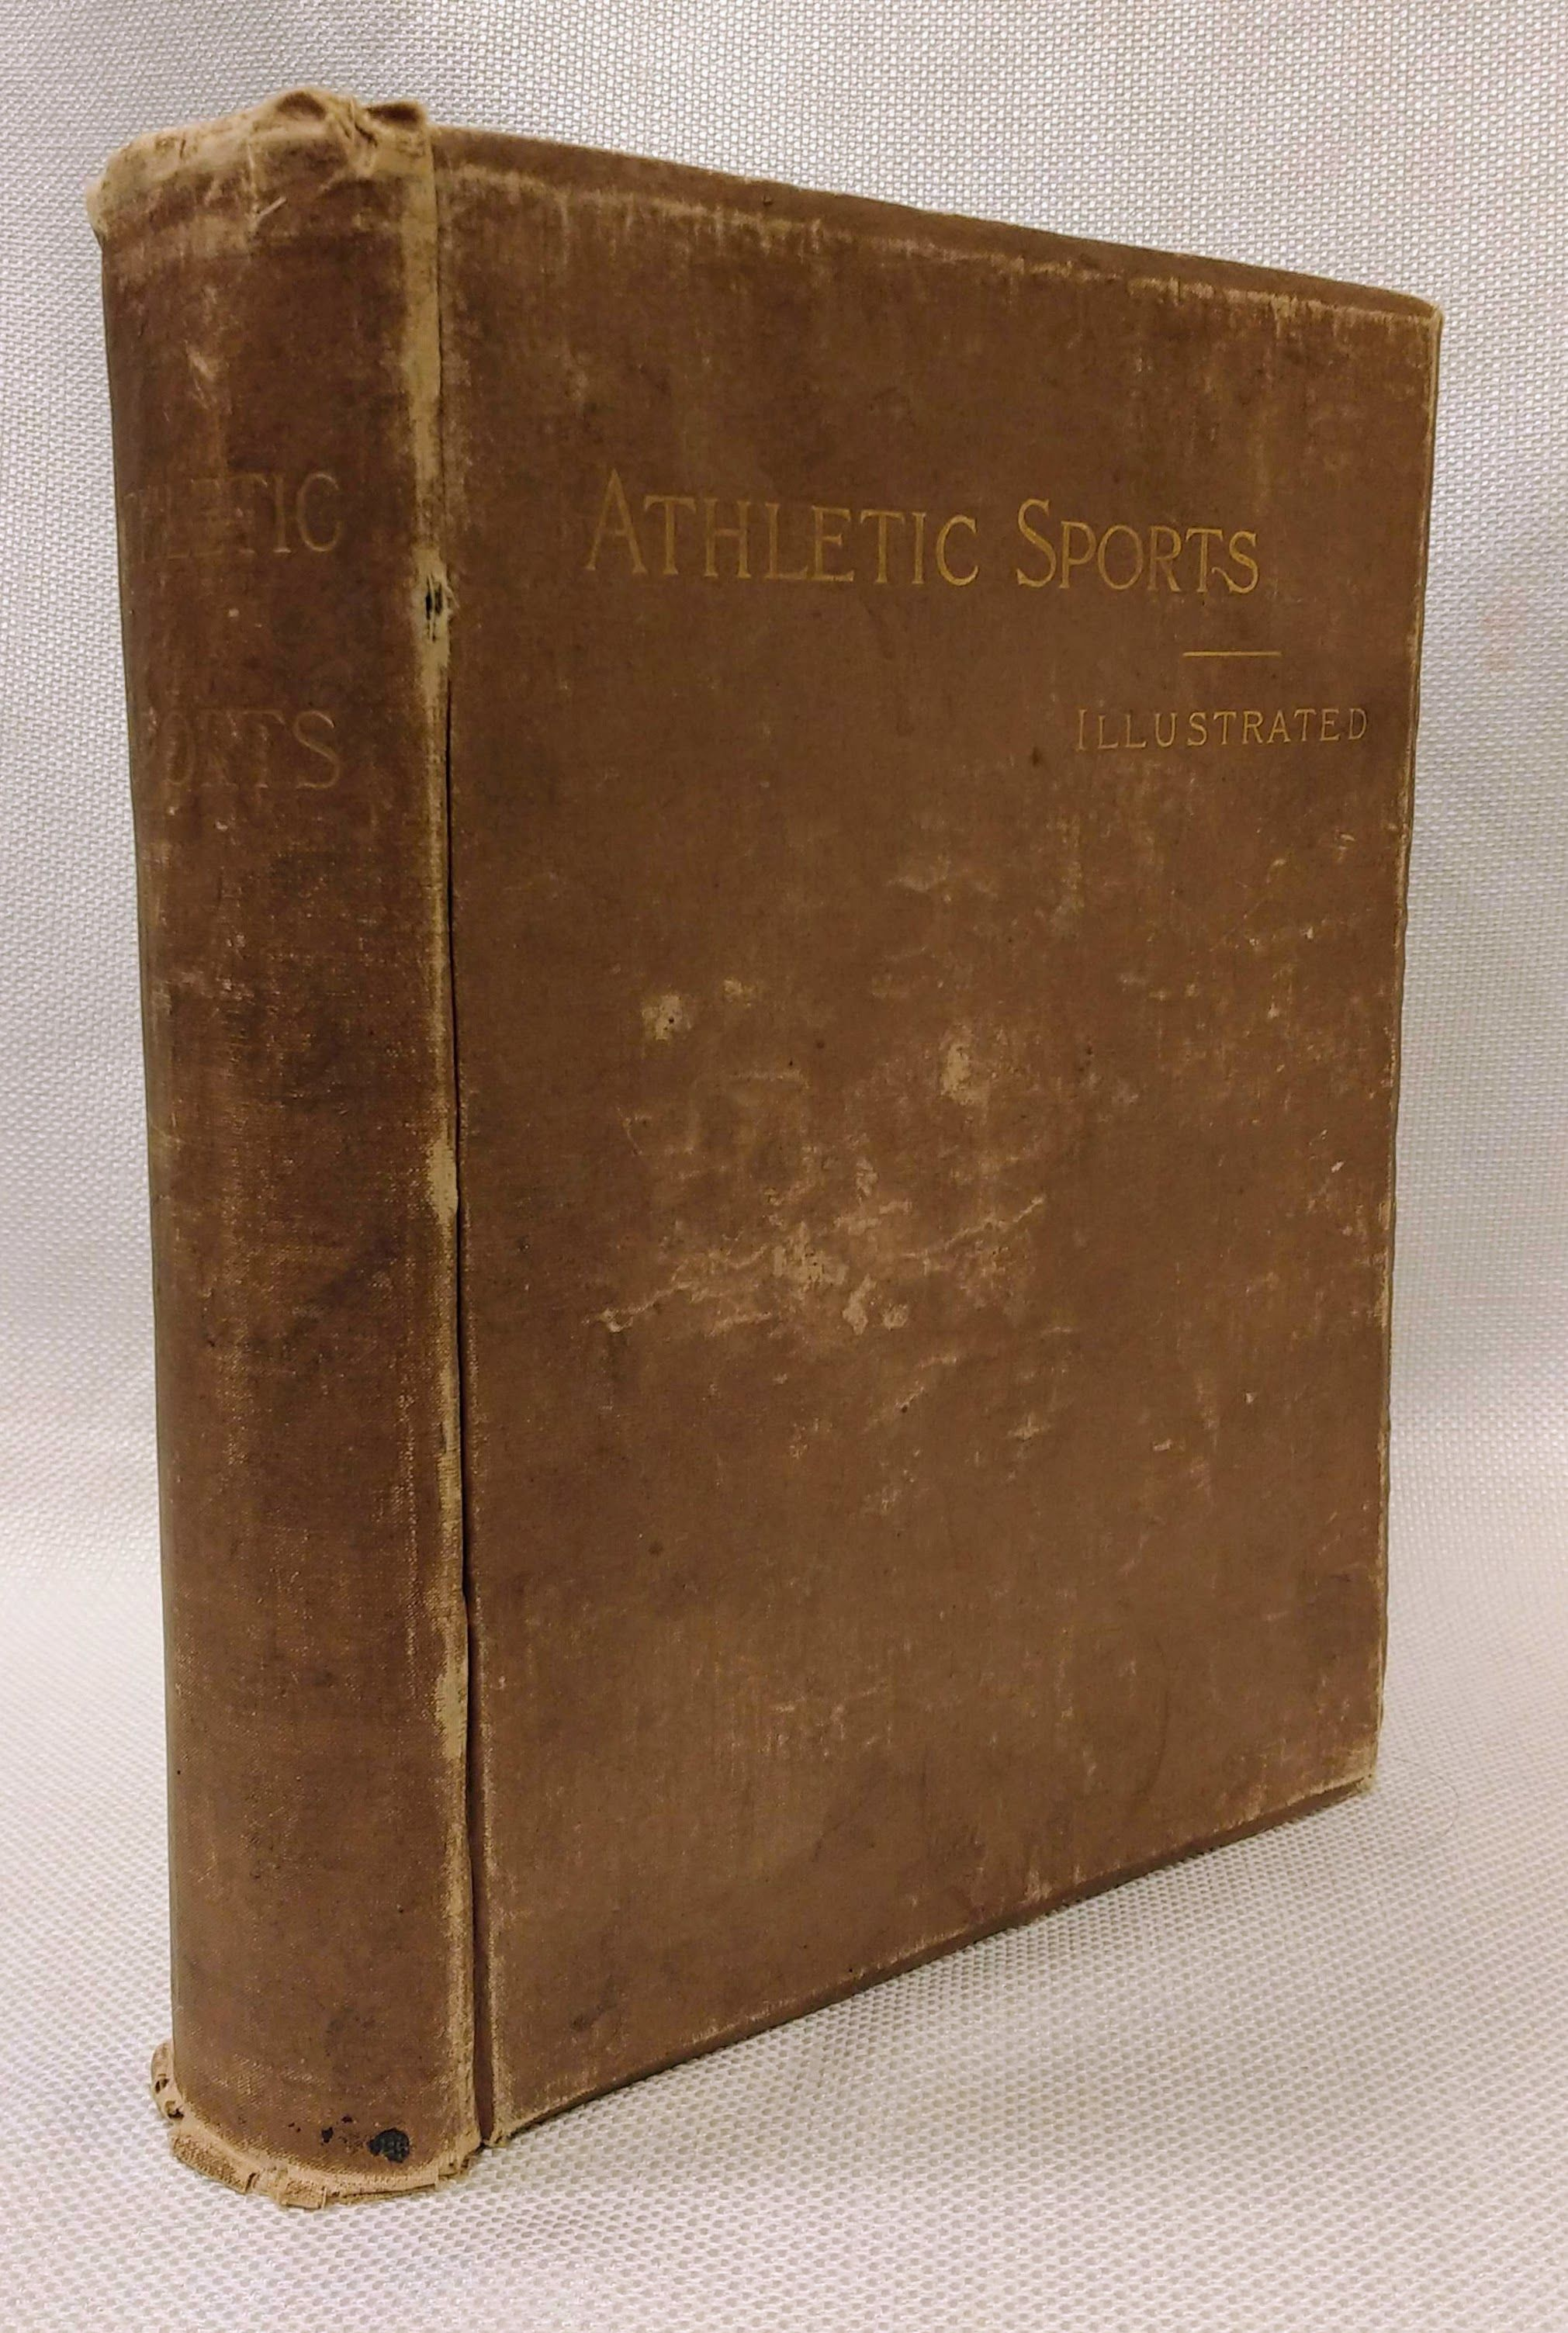 Athletic Sports in America, England and Australia. Comprising History, Characteristics, Sketches of Famous Leaders, Organization and Great Contests of Baseball, Cricket, Football, La Crosse, Tennis, Rowing, and Cycling., Palmer, Harry Clay Et Al